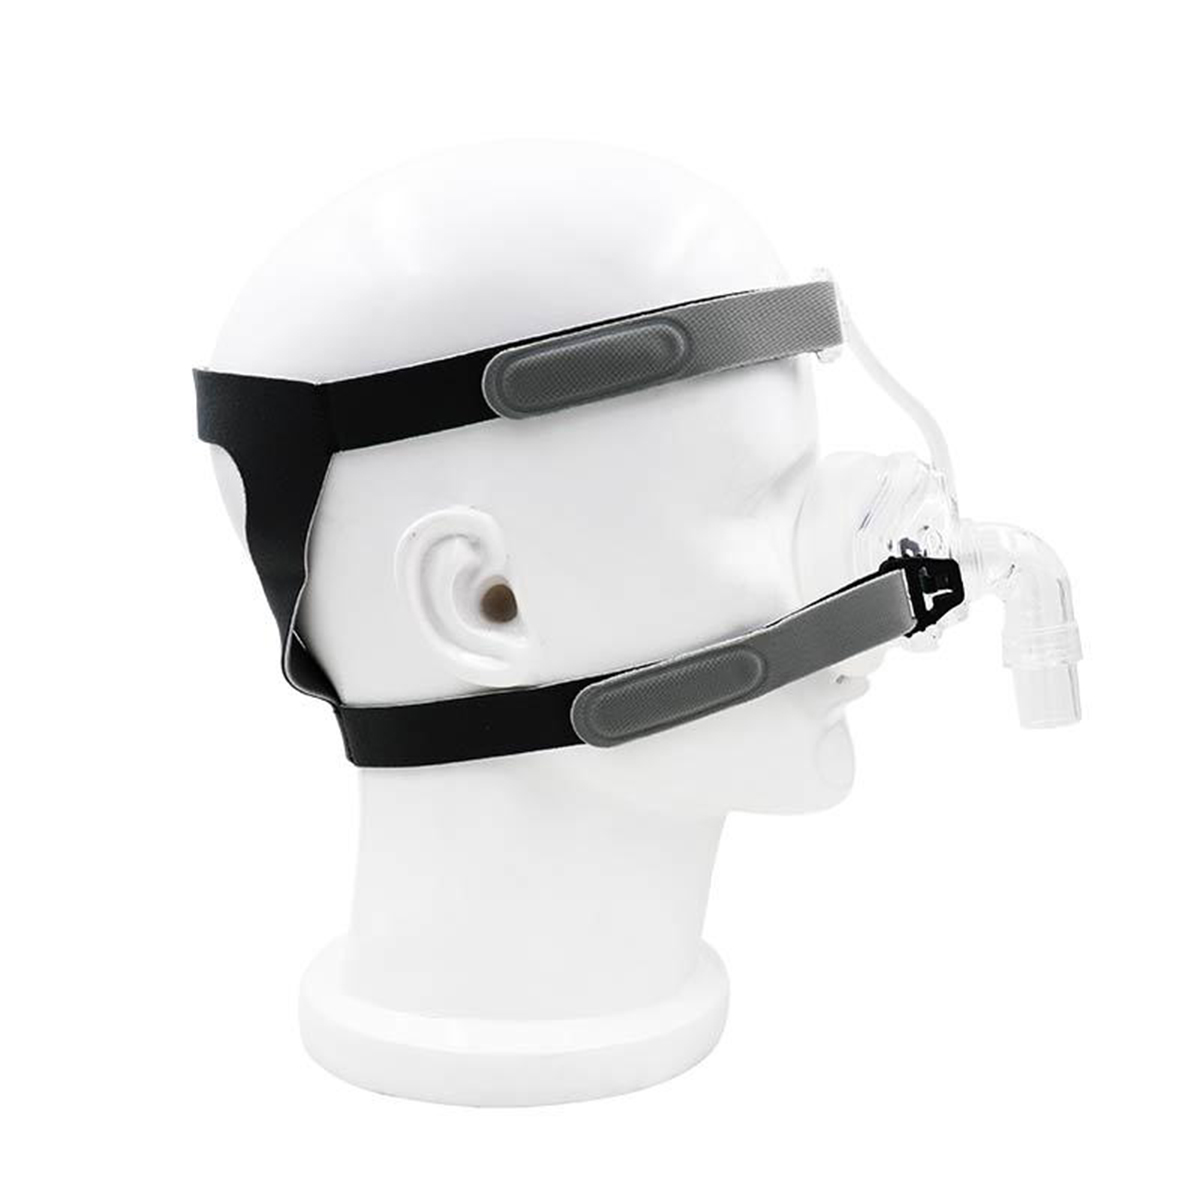 Nasal Mask NM2 For CPAP Masks Interface Sleep Snore Strap w/ Headgear